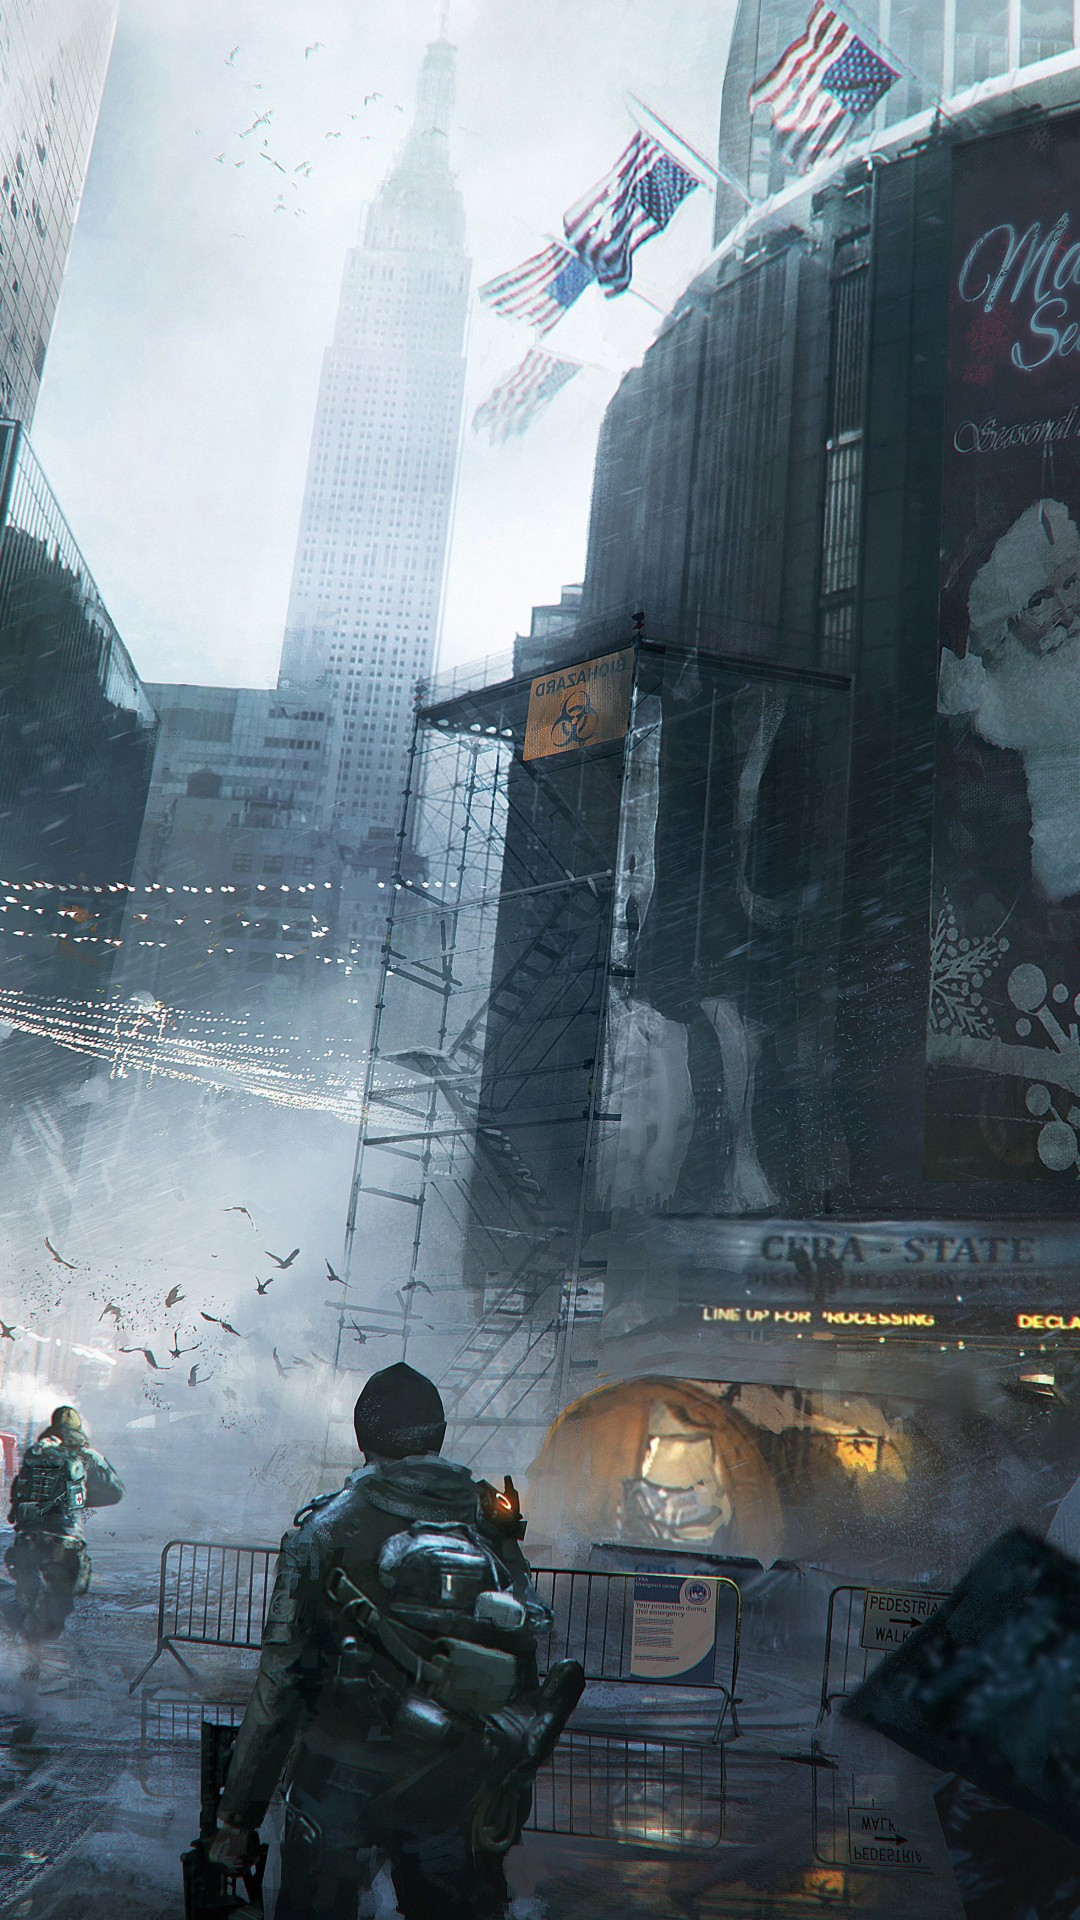 Wallpaper The Division Tom Clancy S Game Apocalypse